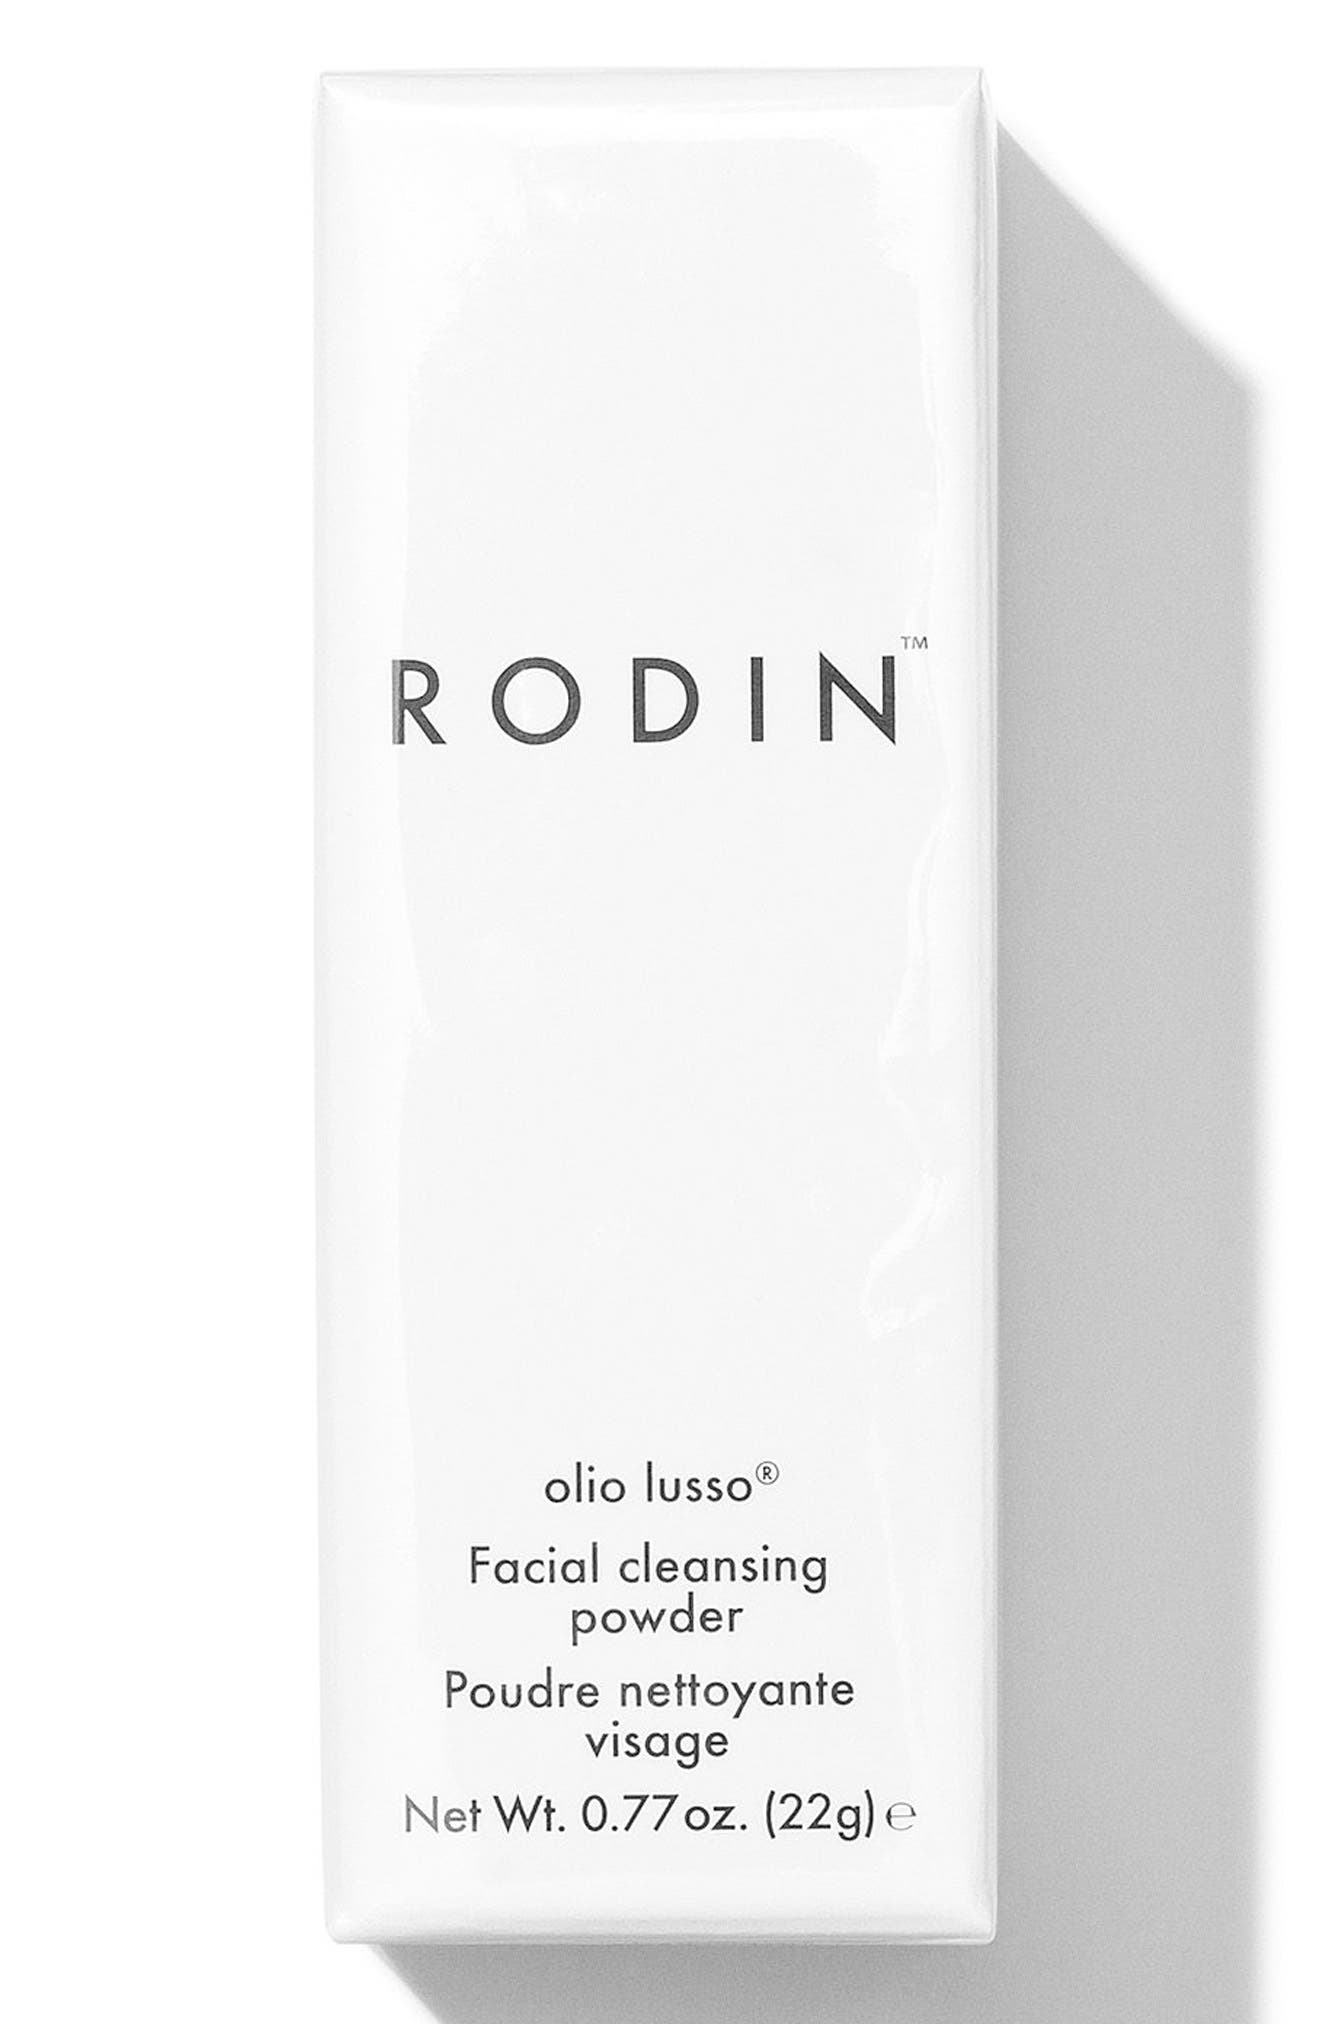 RODIN OLIO LUSSO,                             Facial Cleansing Powder,                             Alternate thumbnail 2, color,                             NO COLOR